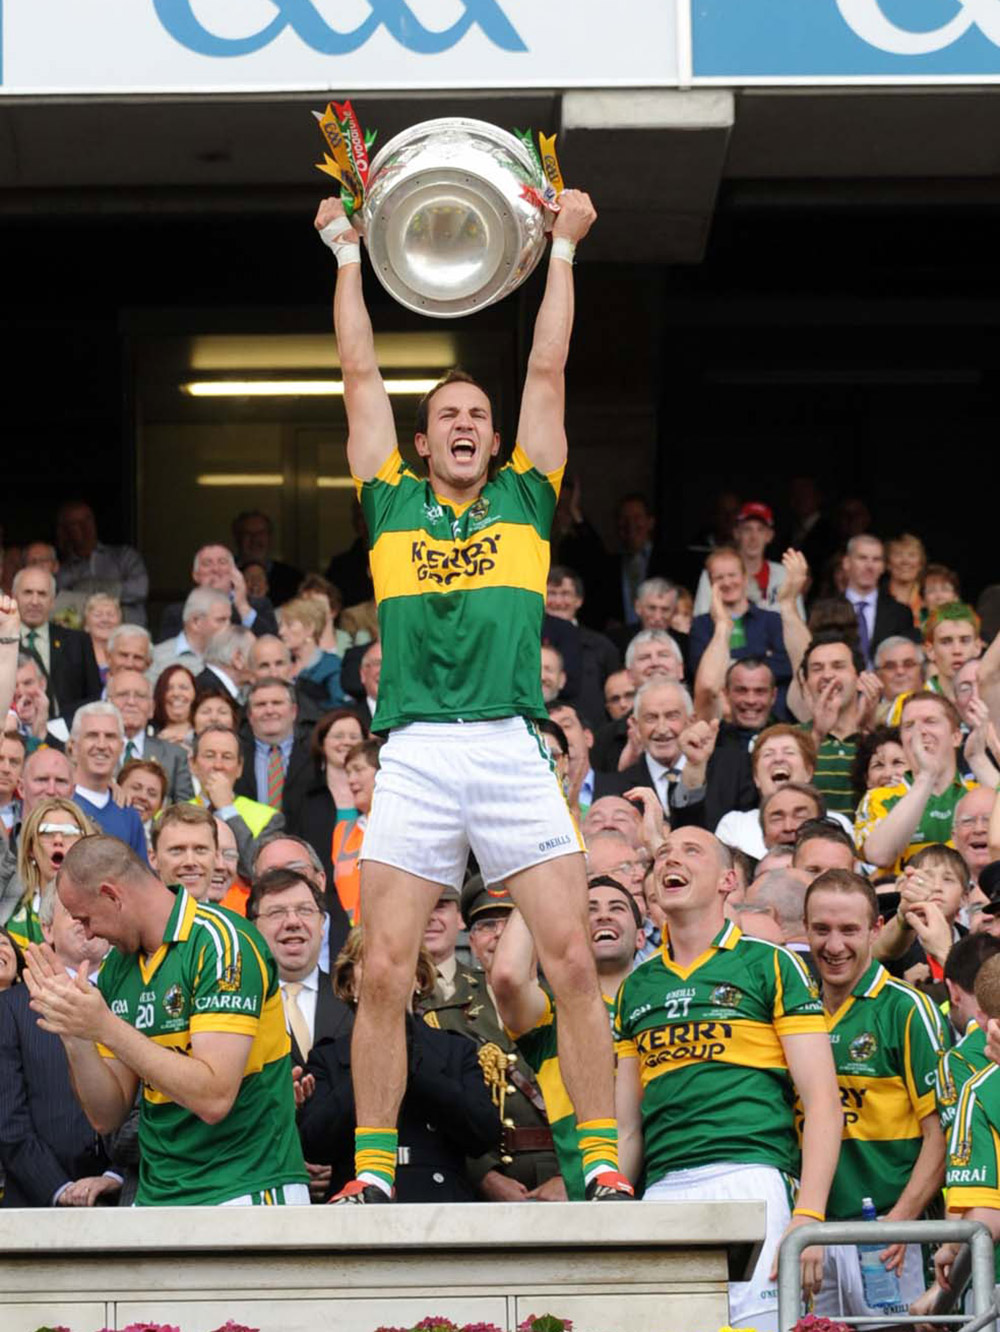 In 2009, Tadhg Kennelly became the first irishman to win both an AFL Premiership and an All Ireland Championship.